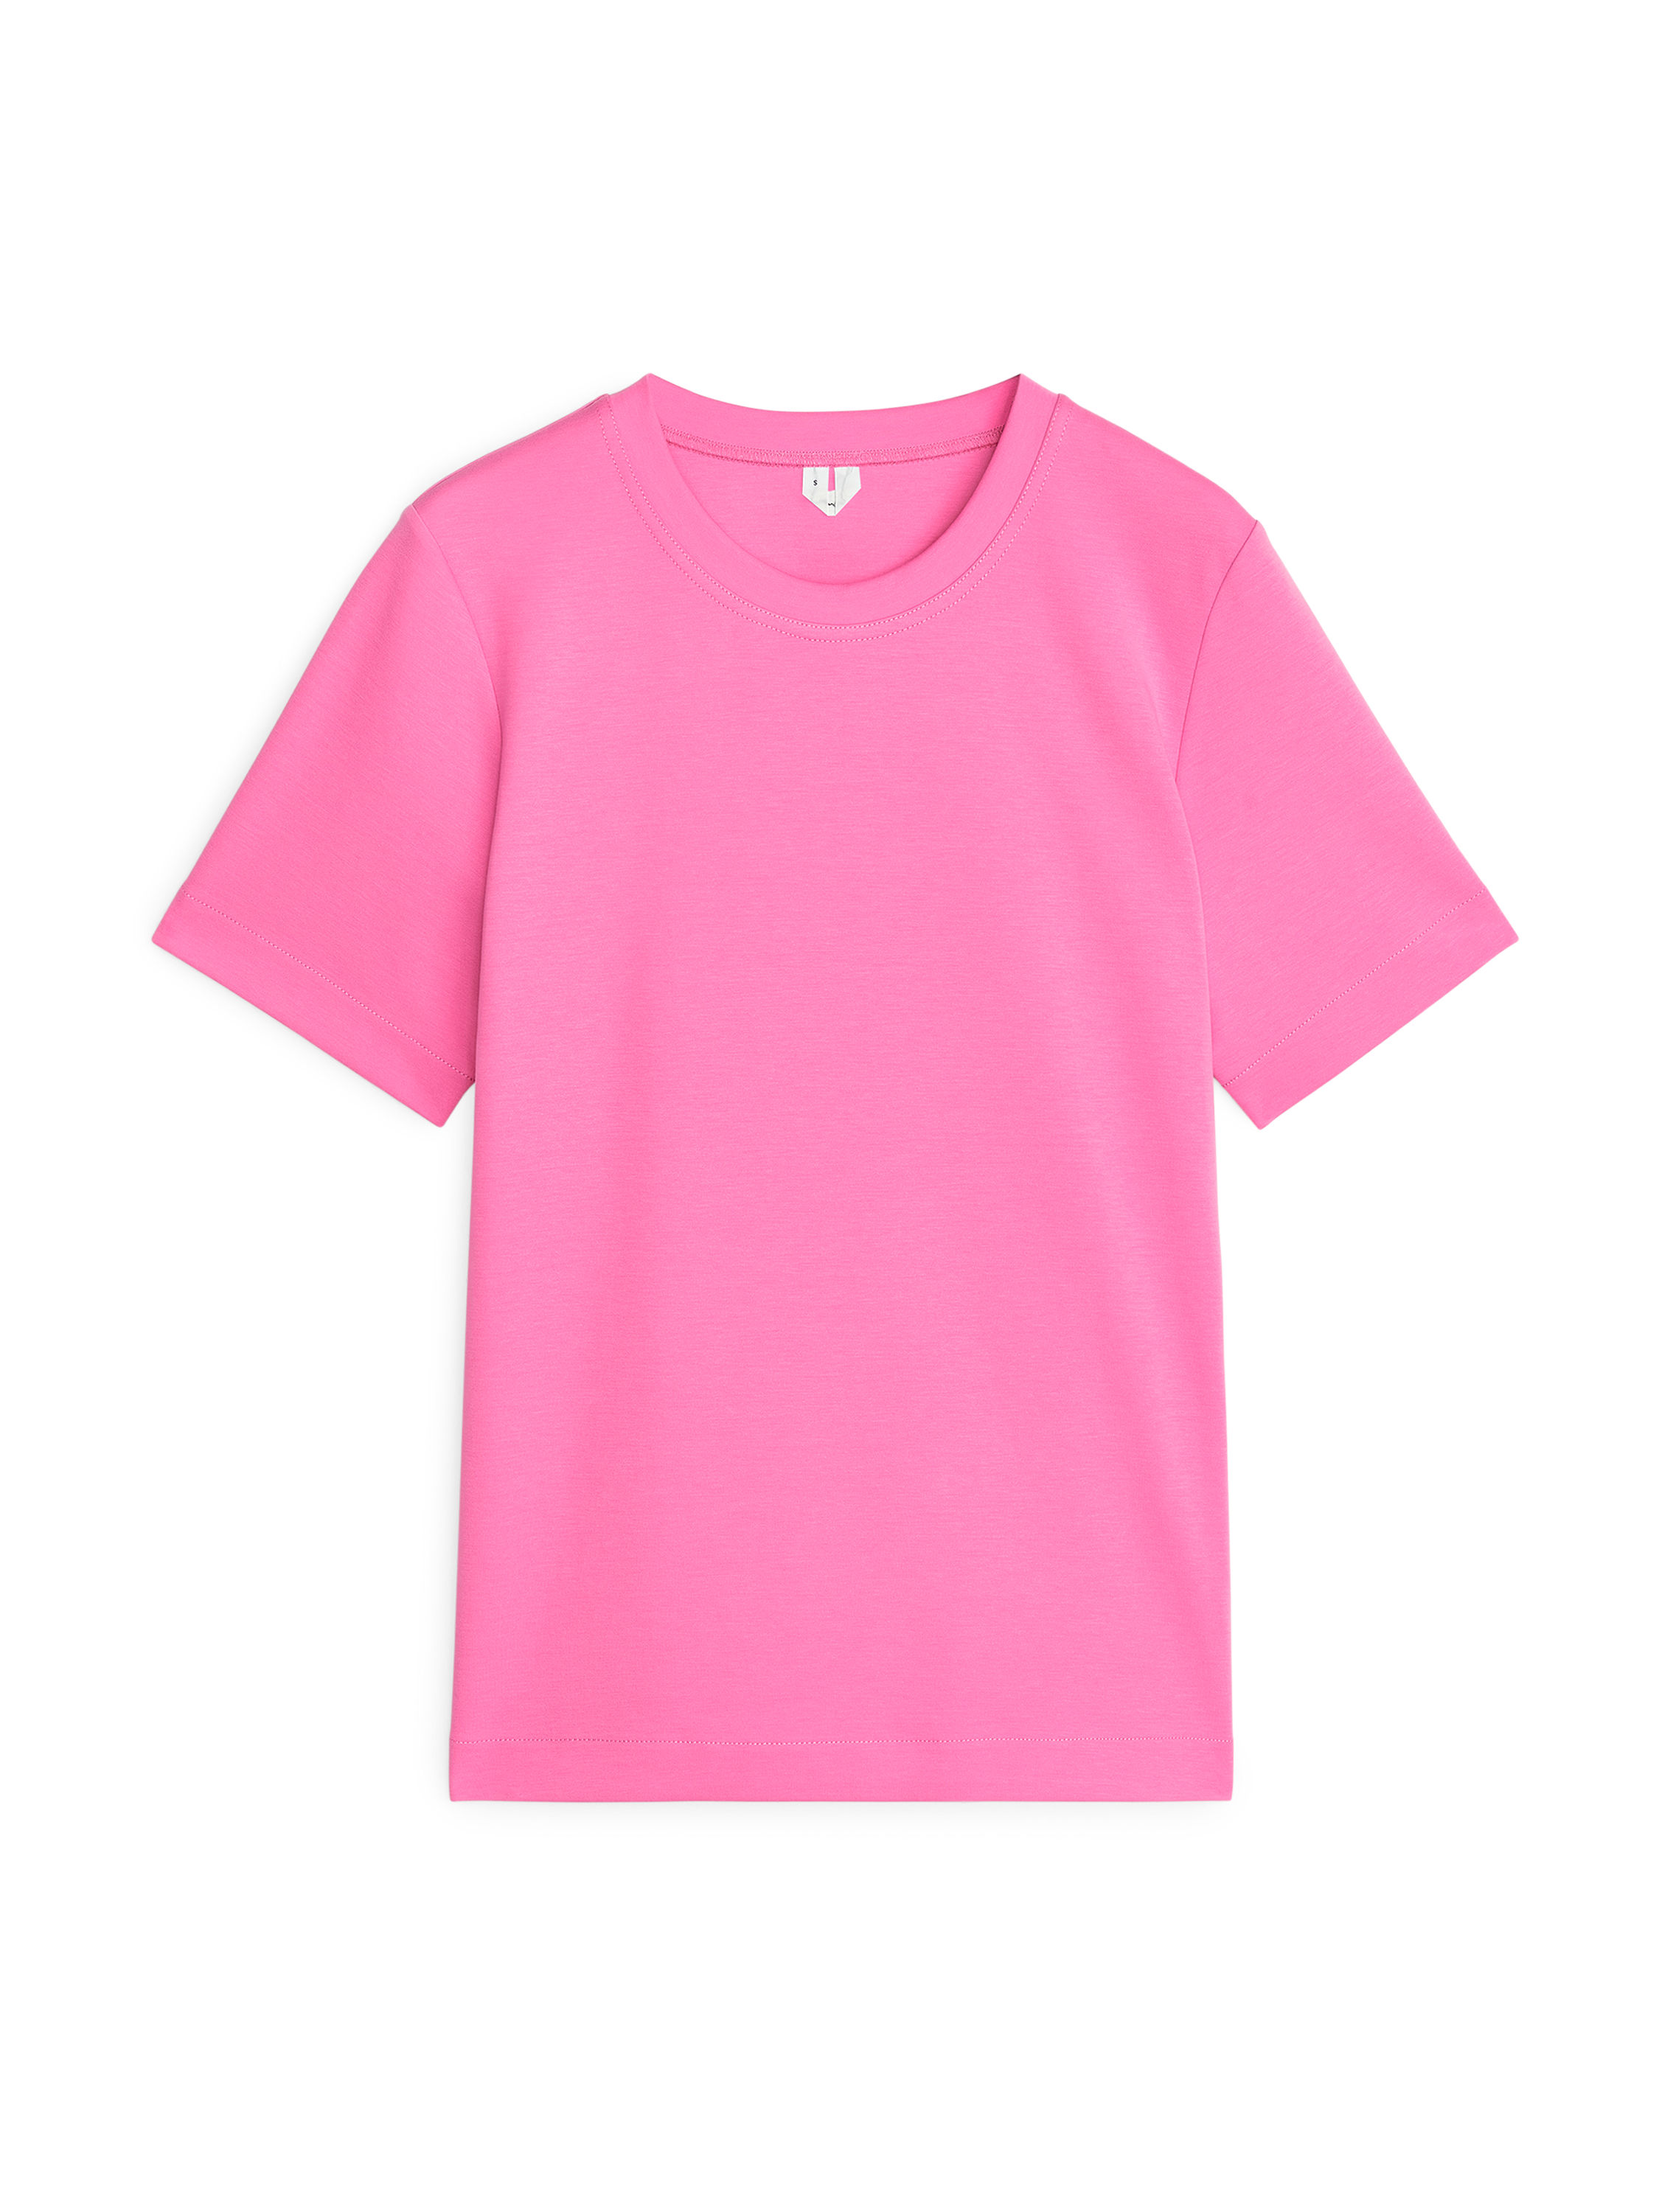 Fabric Swatch image of Arket heavy-weight t-shirt in pink